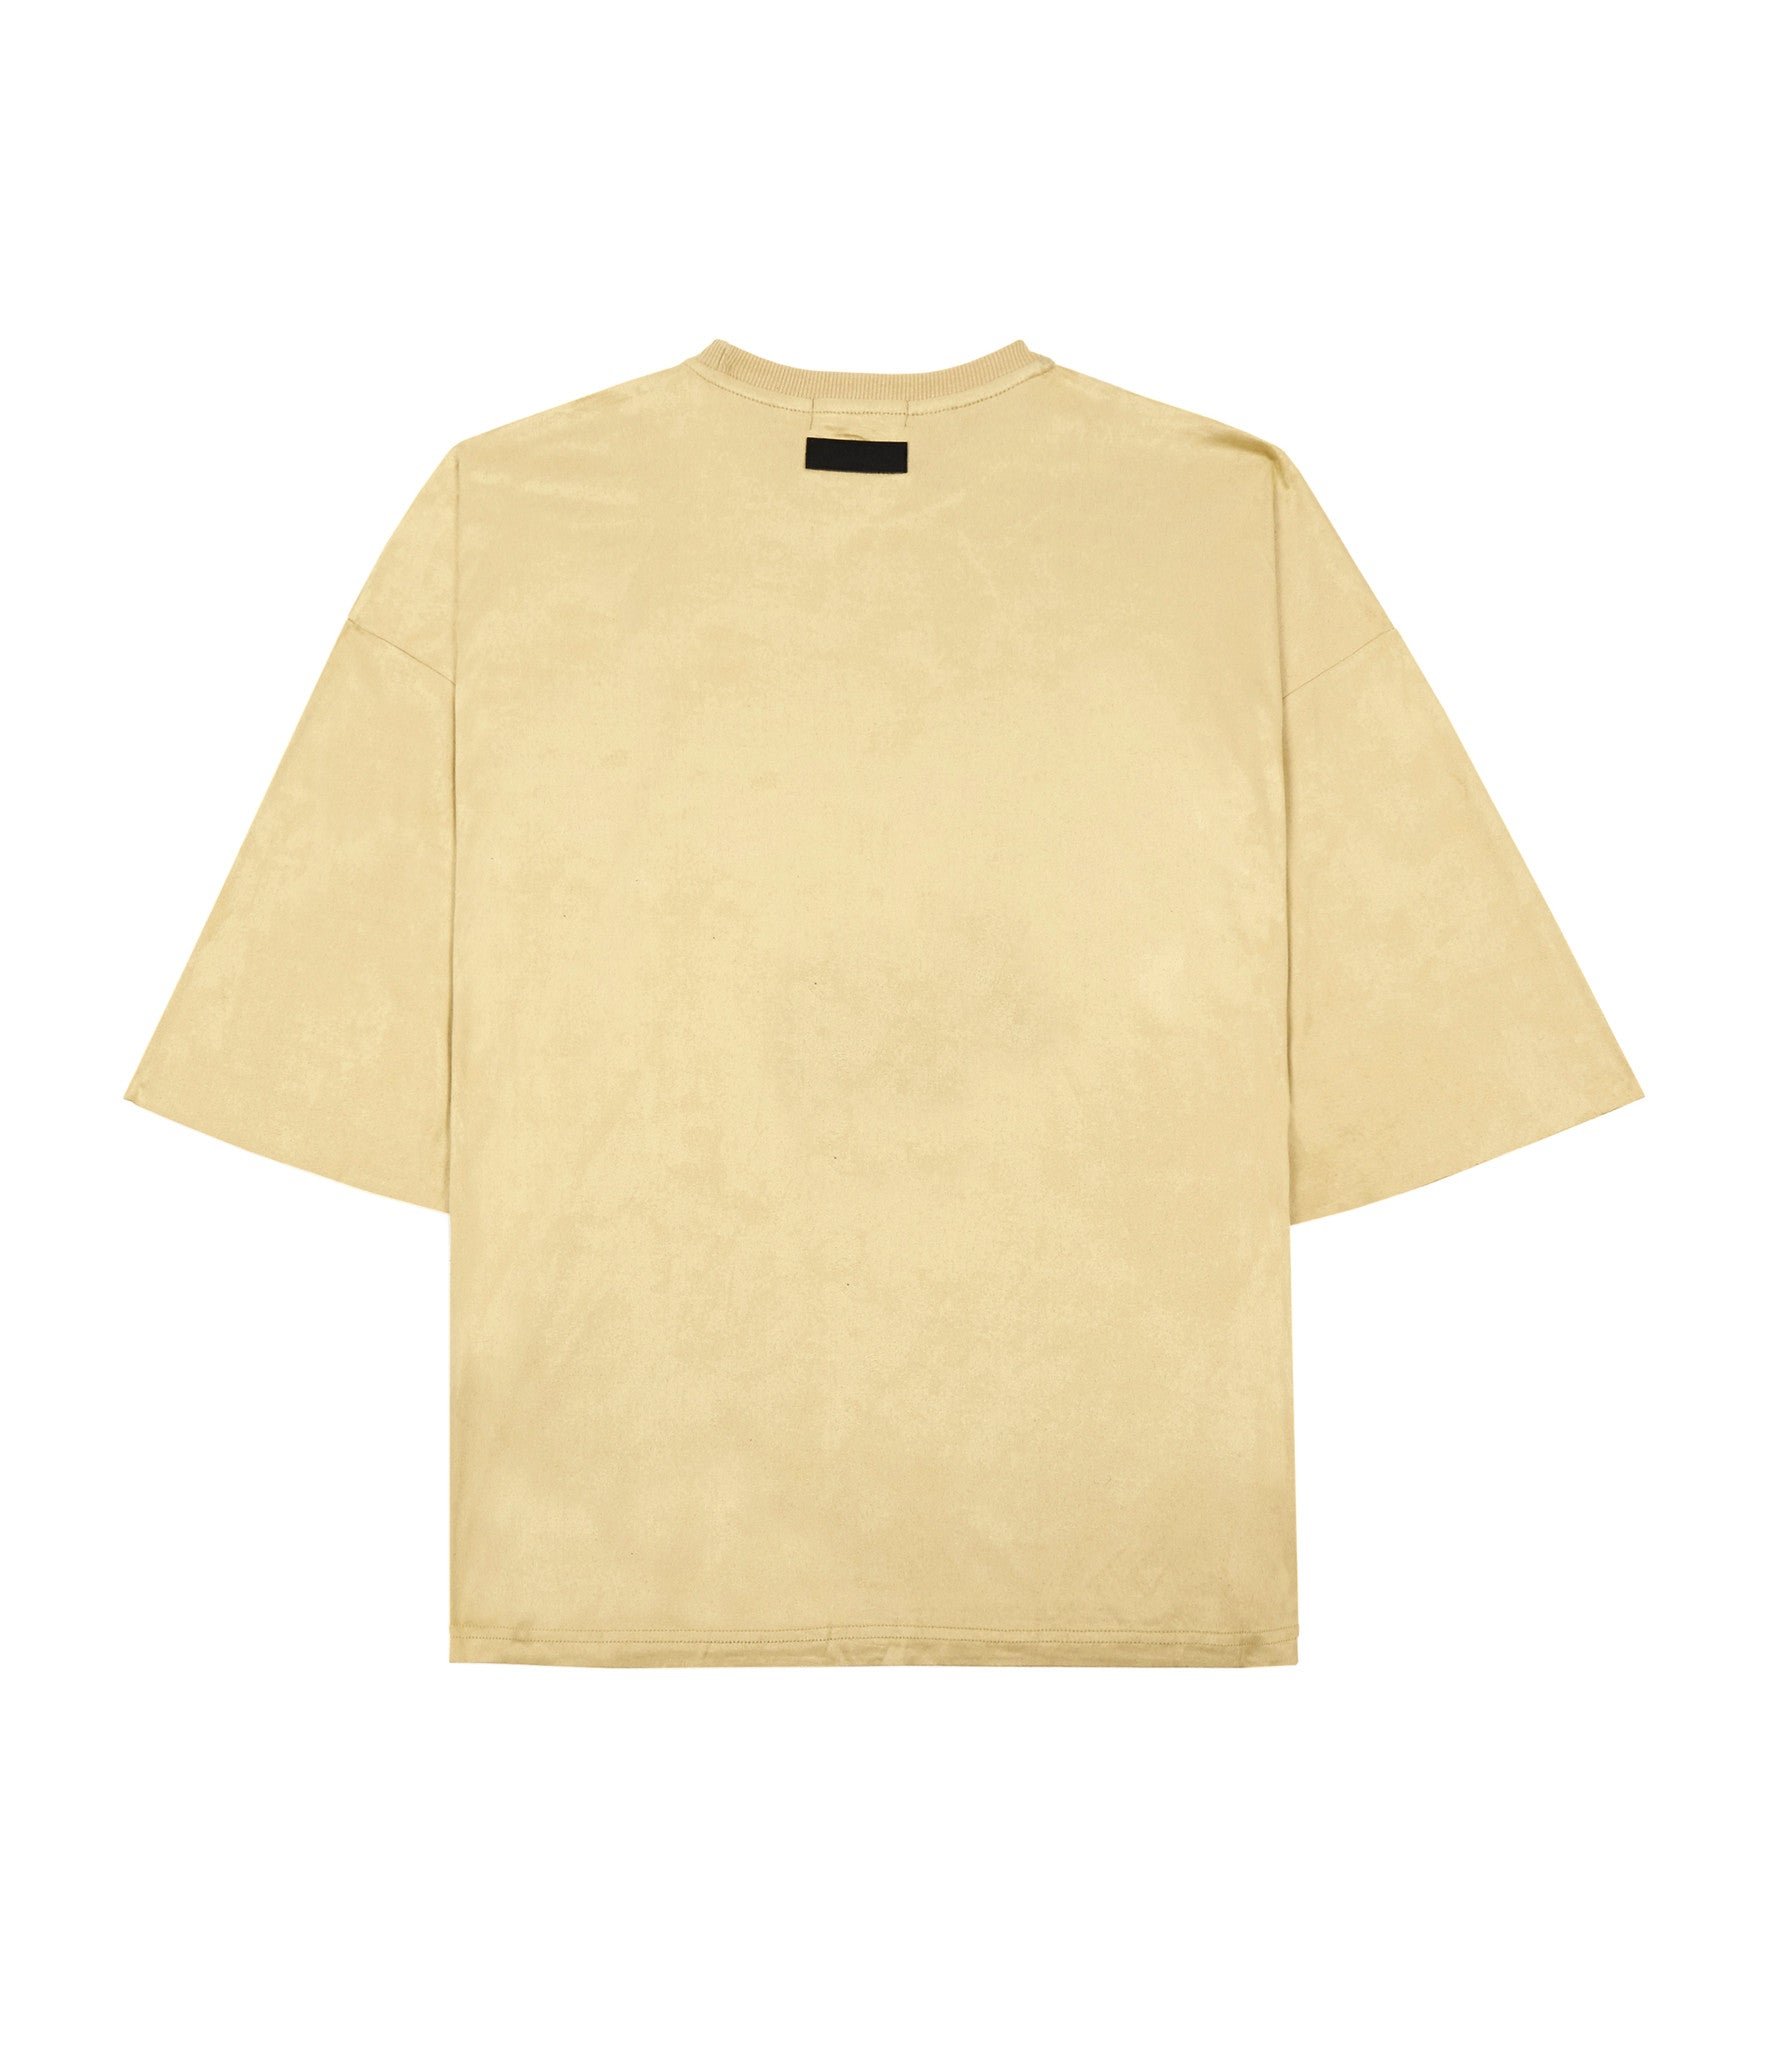 TS302 Suede Oversized Box Tee - Beige - underated london - underatedco - 3